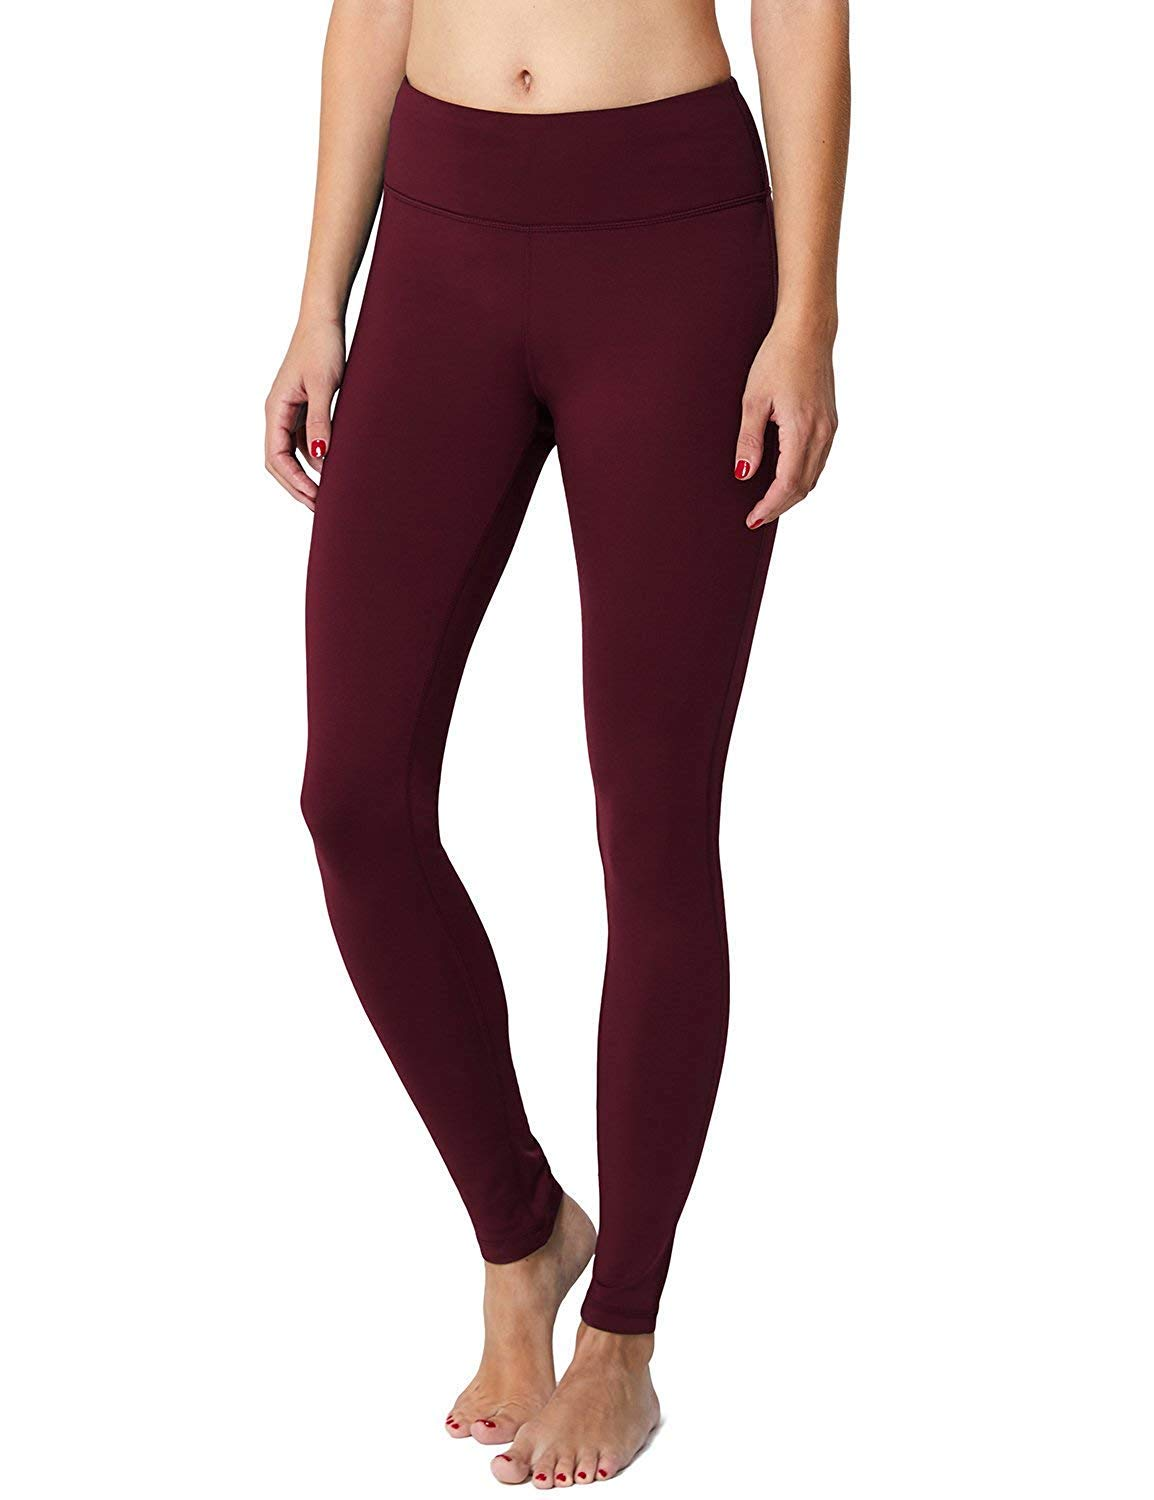 BALEAF Women's Fleece Lined Leggings Yoga Pants Inner Pocket Ruby Wine Size S